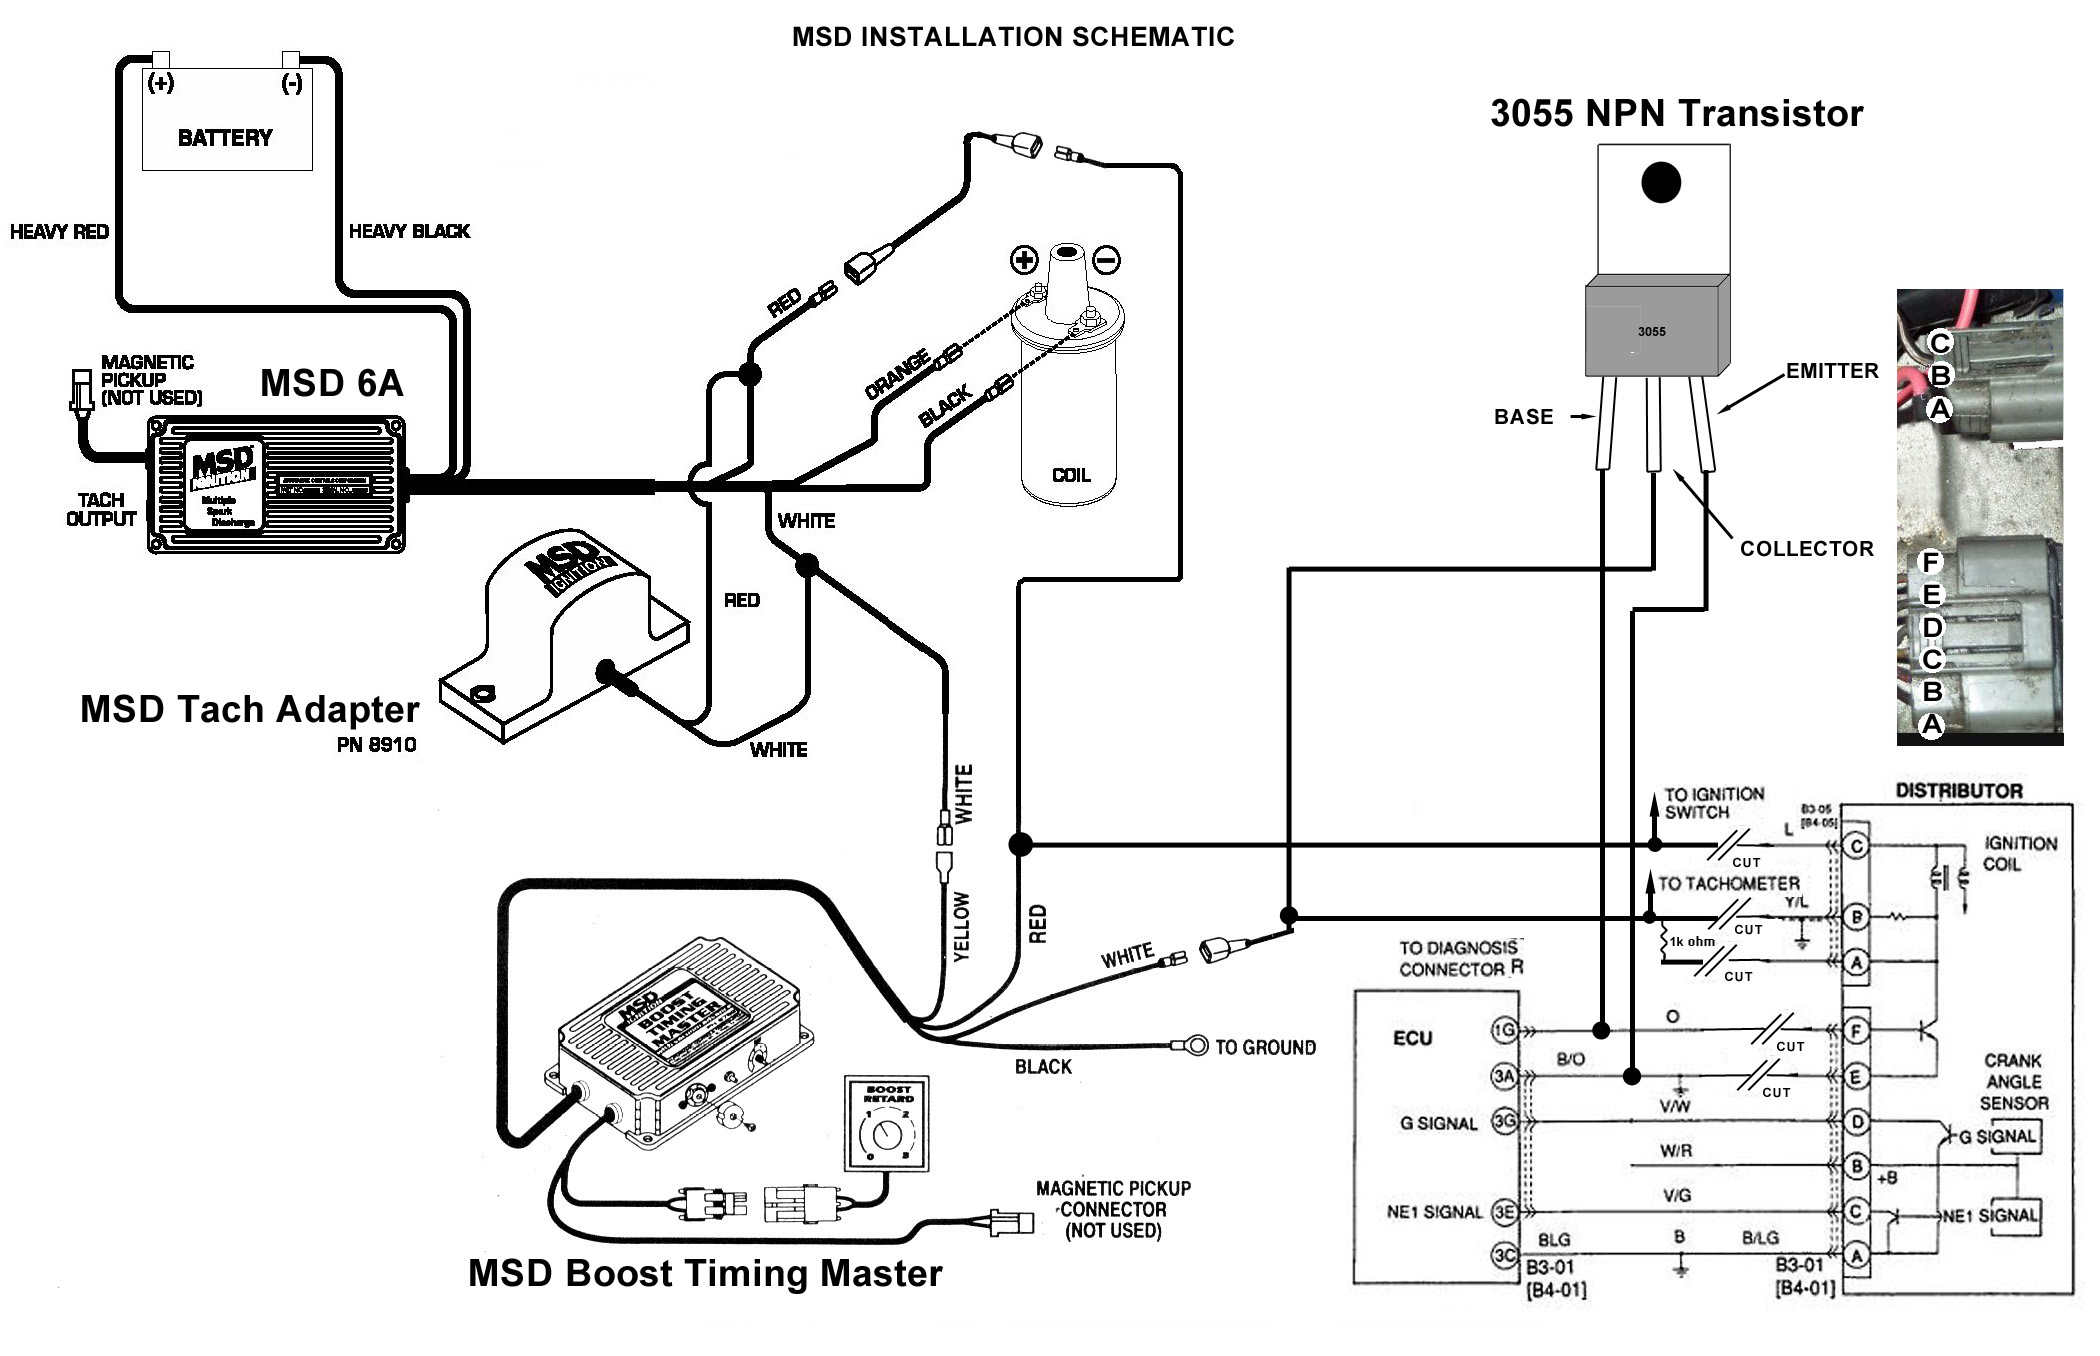 2002 Mazda Protege Radio Wiring Diagram Together With 1993 Mx6 On 1991 Miata Msd Mx 6 Forum Rh Com